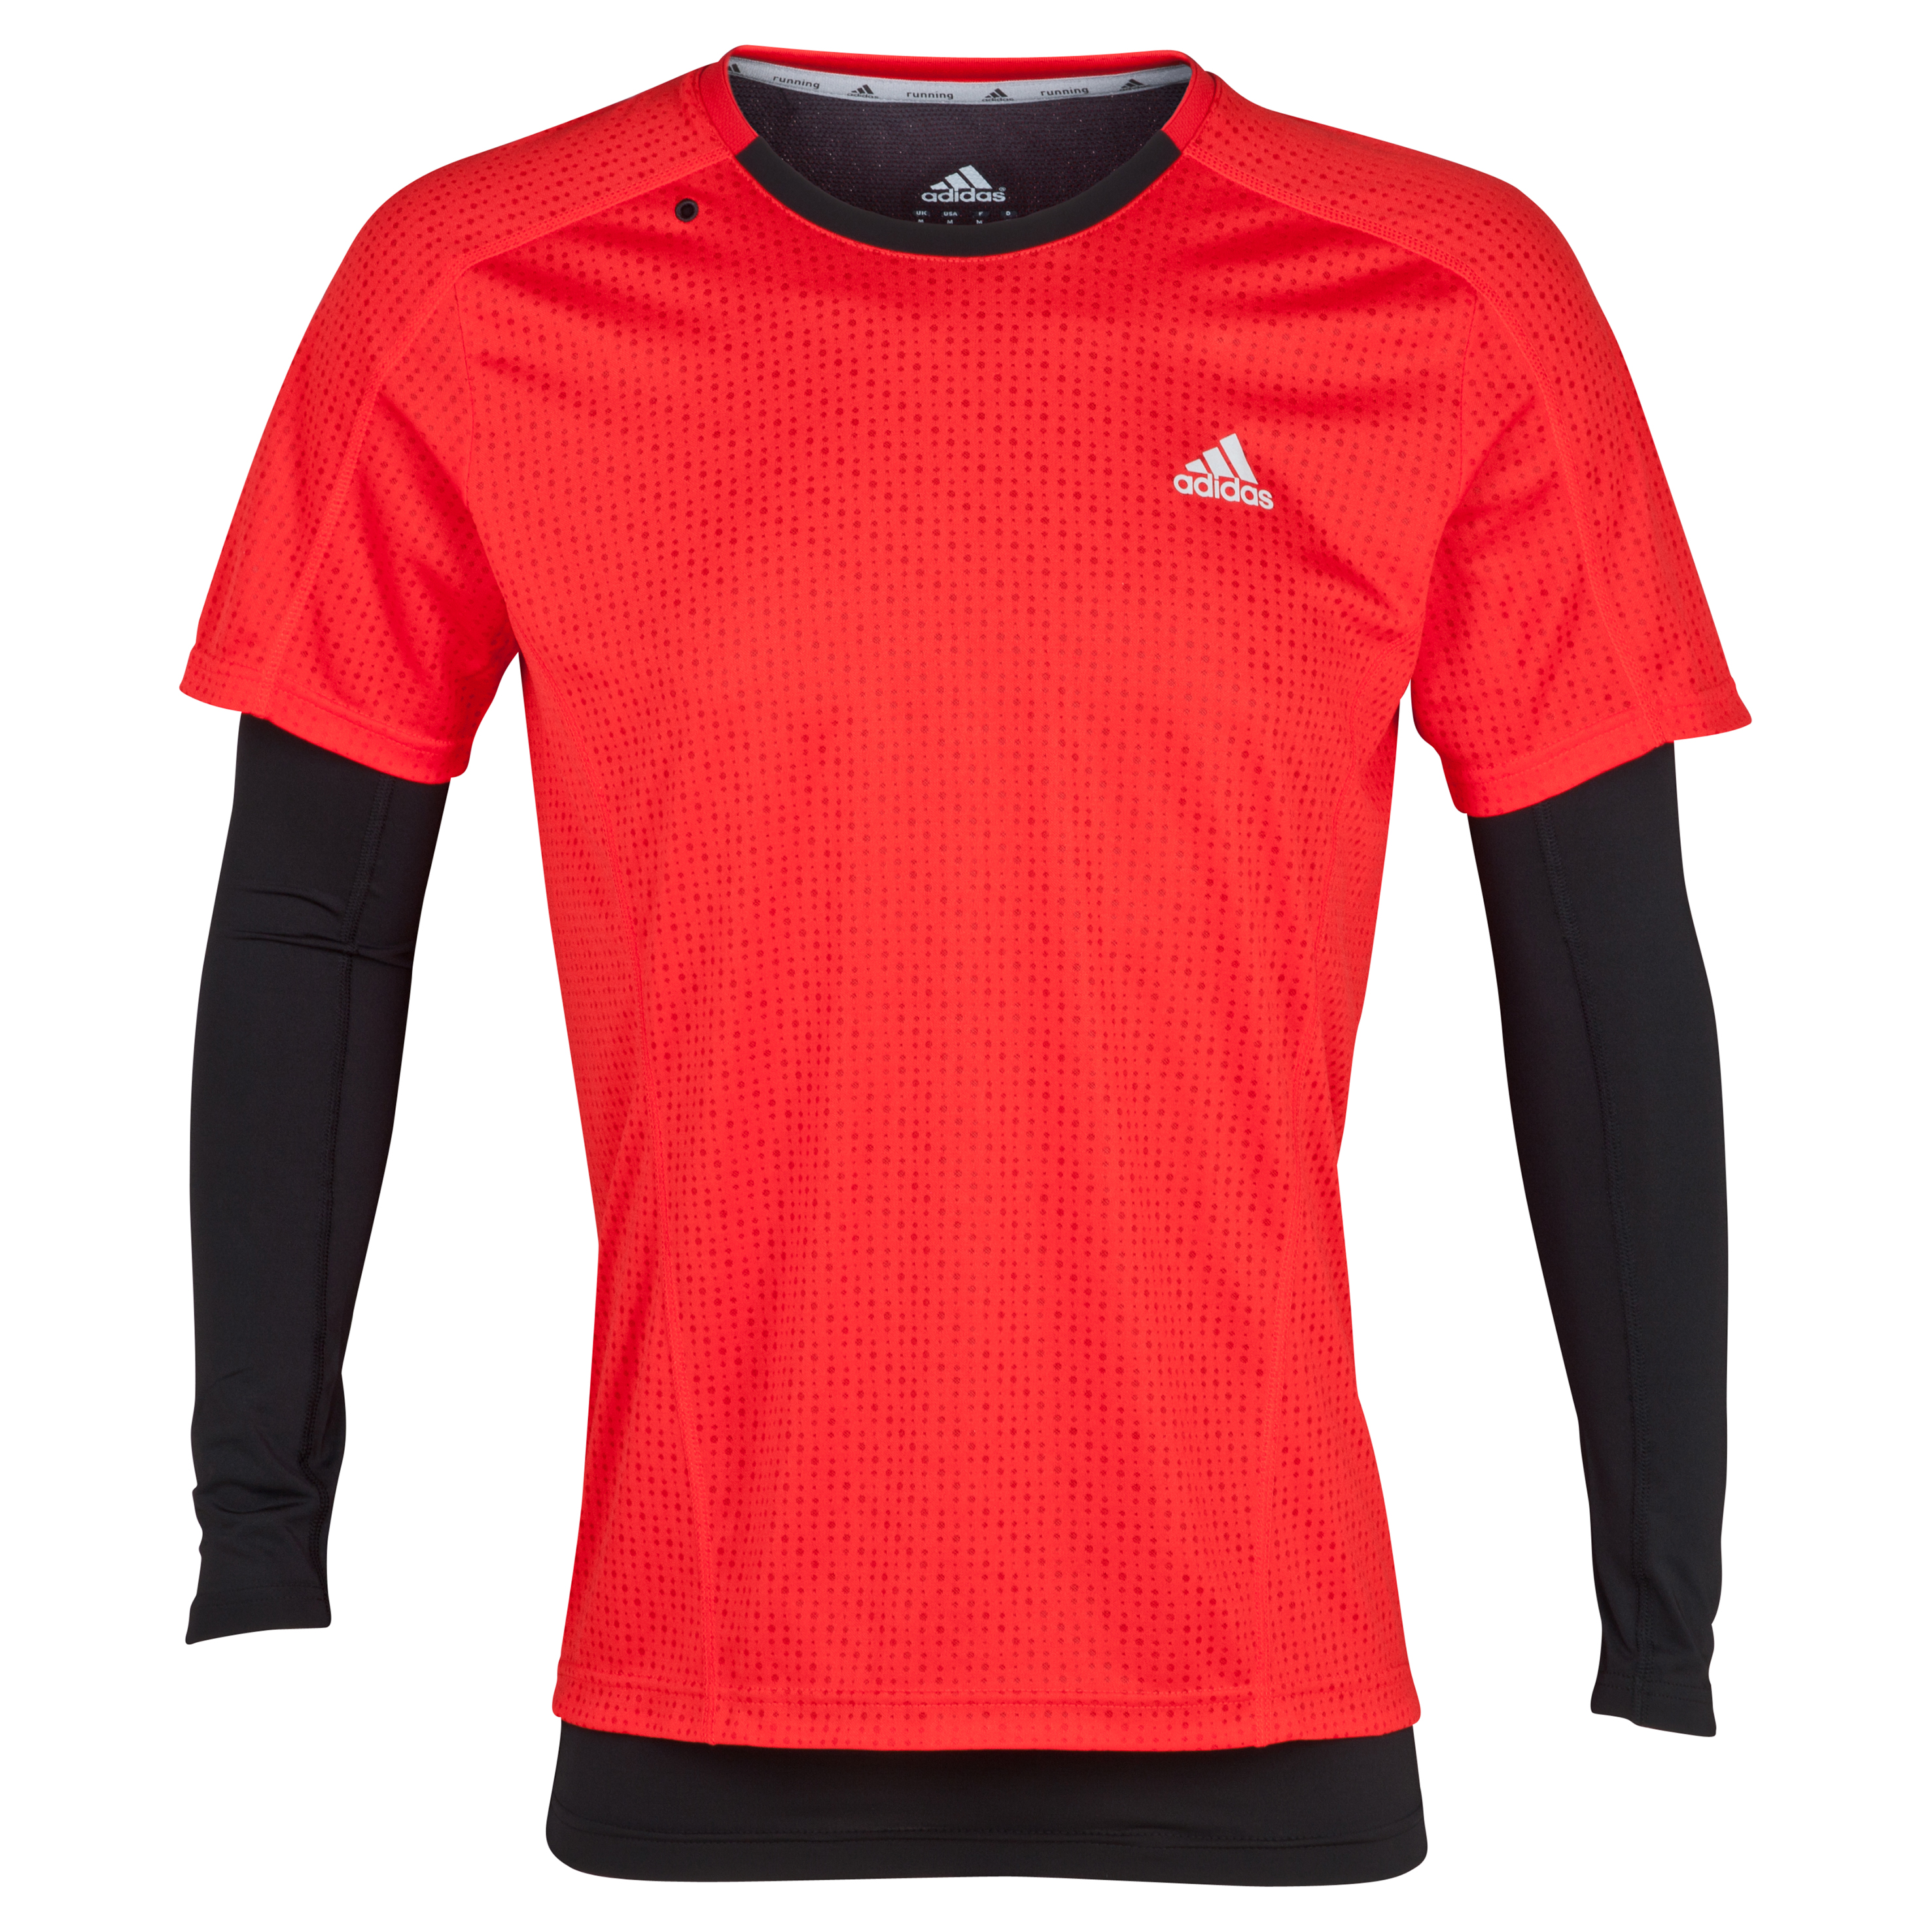 Adidas Supernova 2in1 T-Shirt - Long Sleeve - Vivid Red/Black